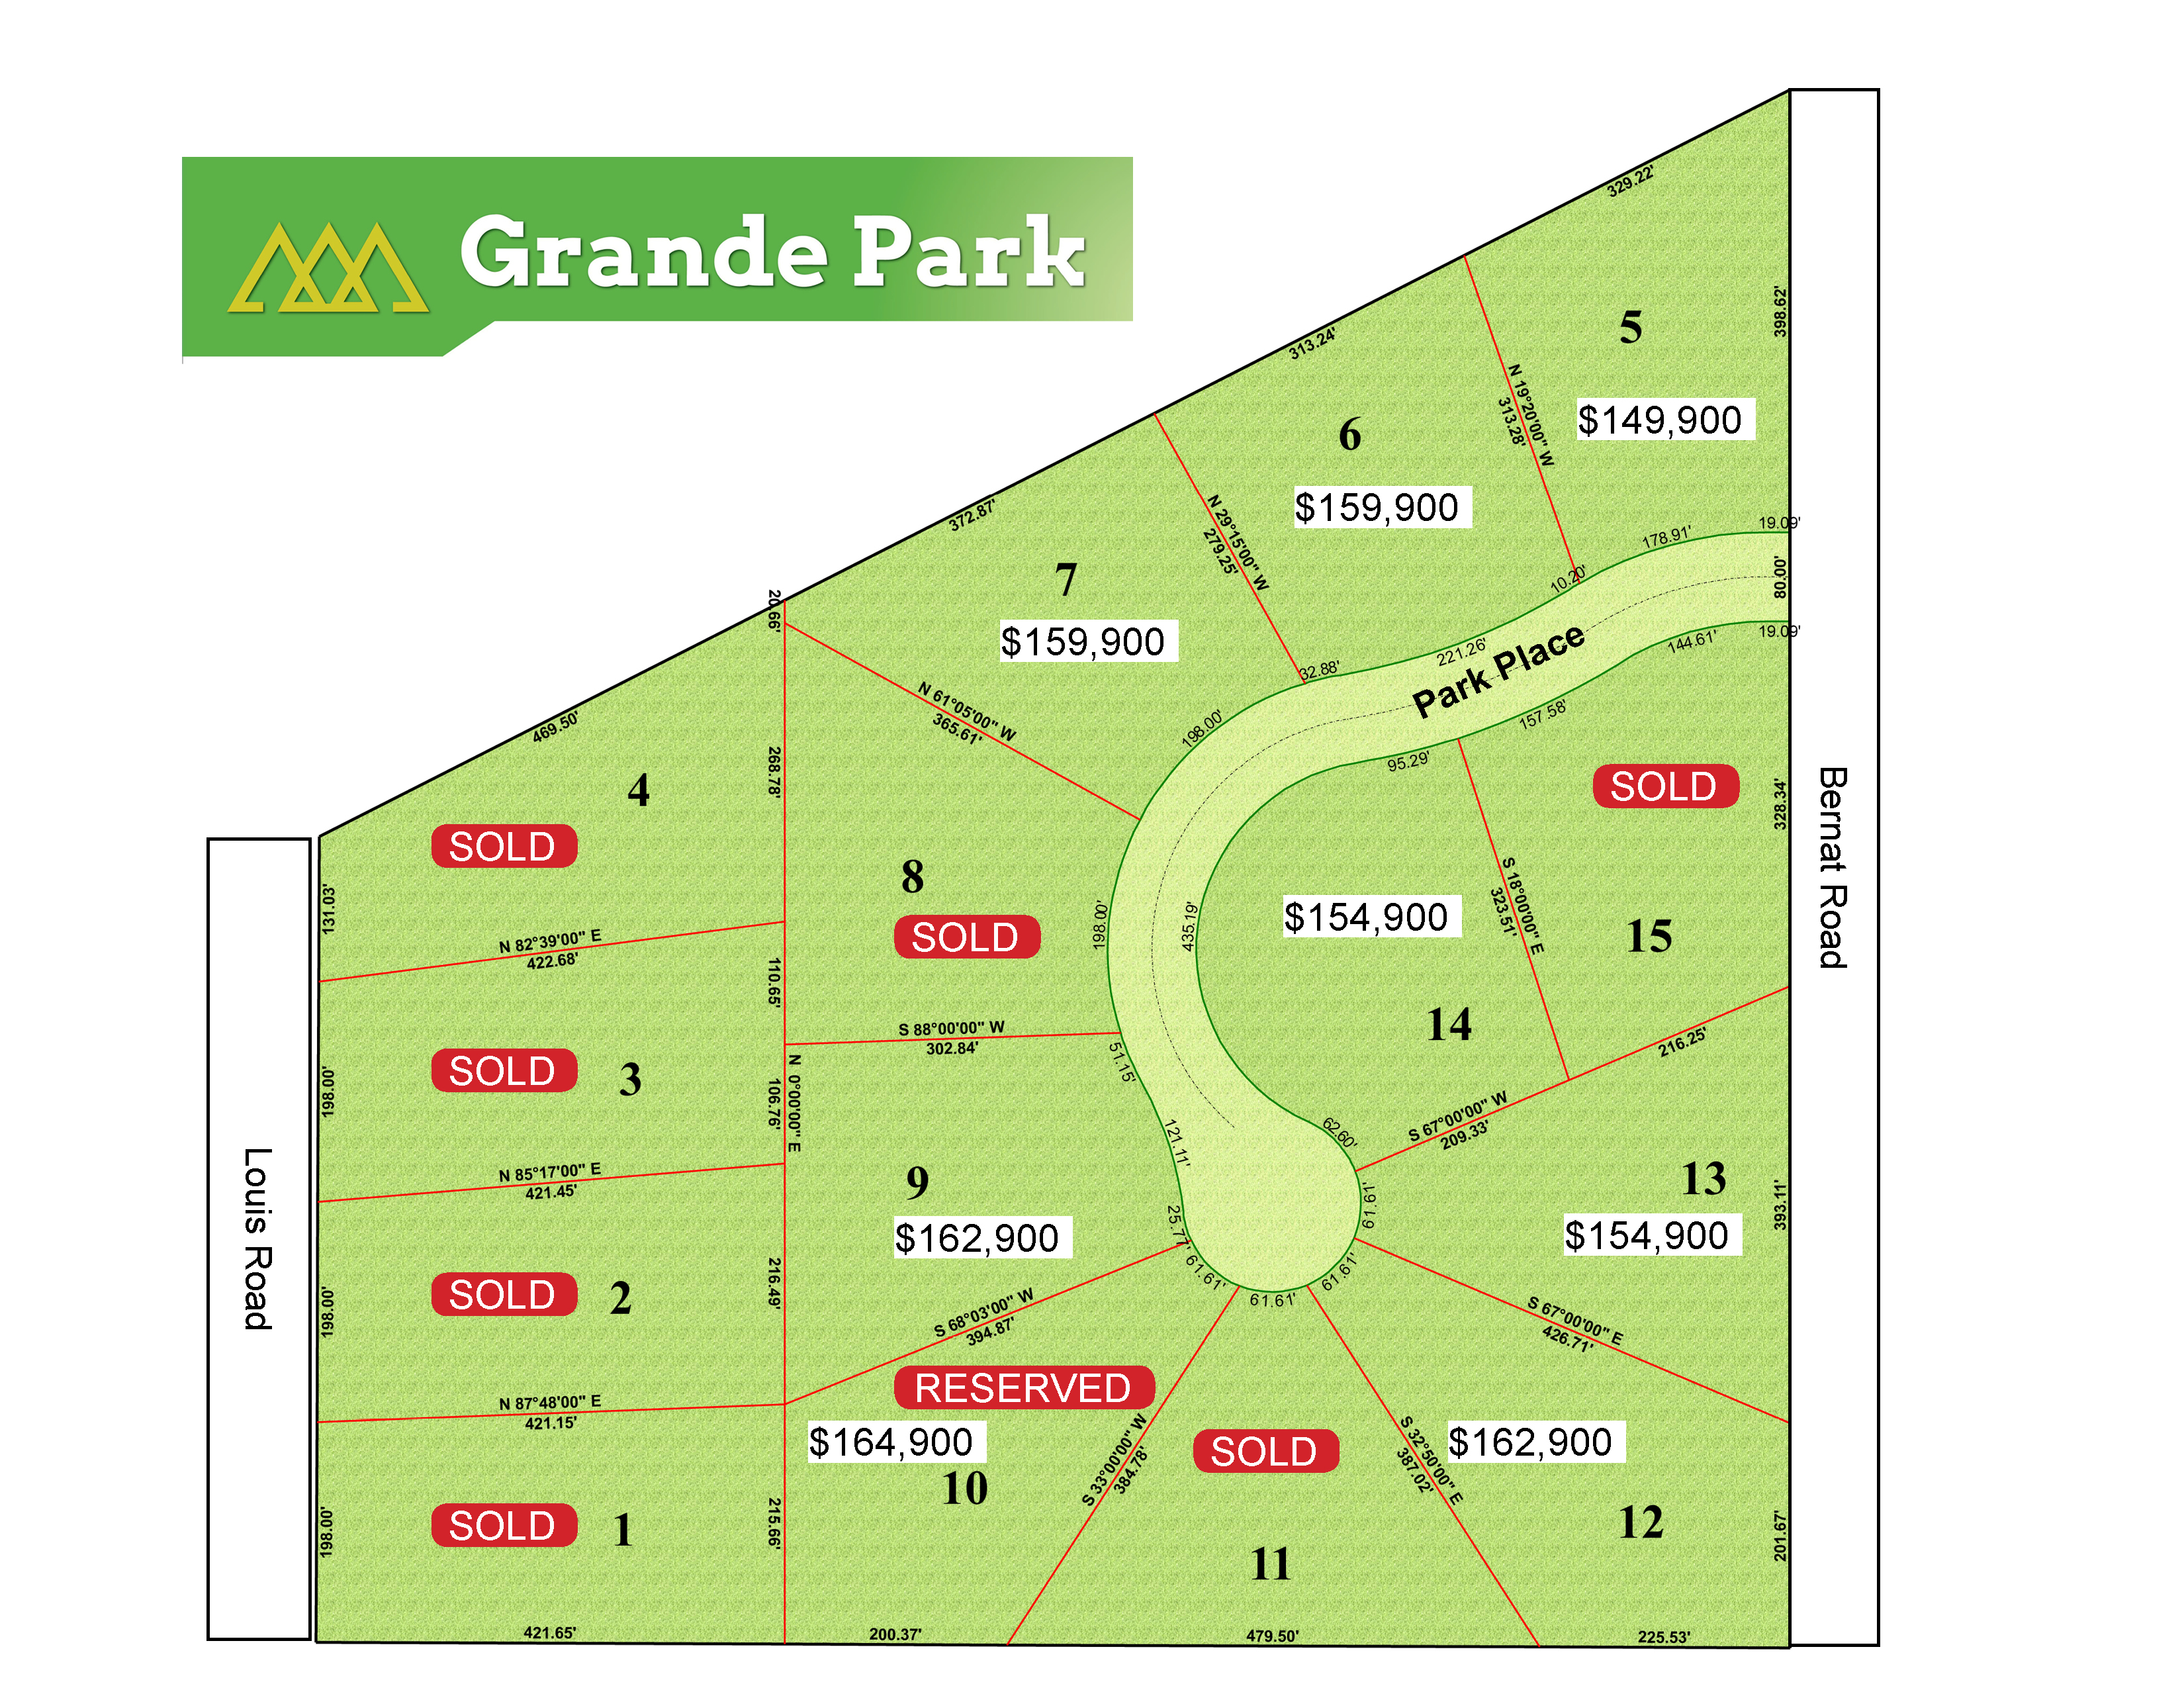 Grande Park Development Site Map